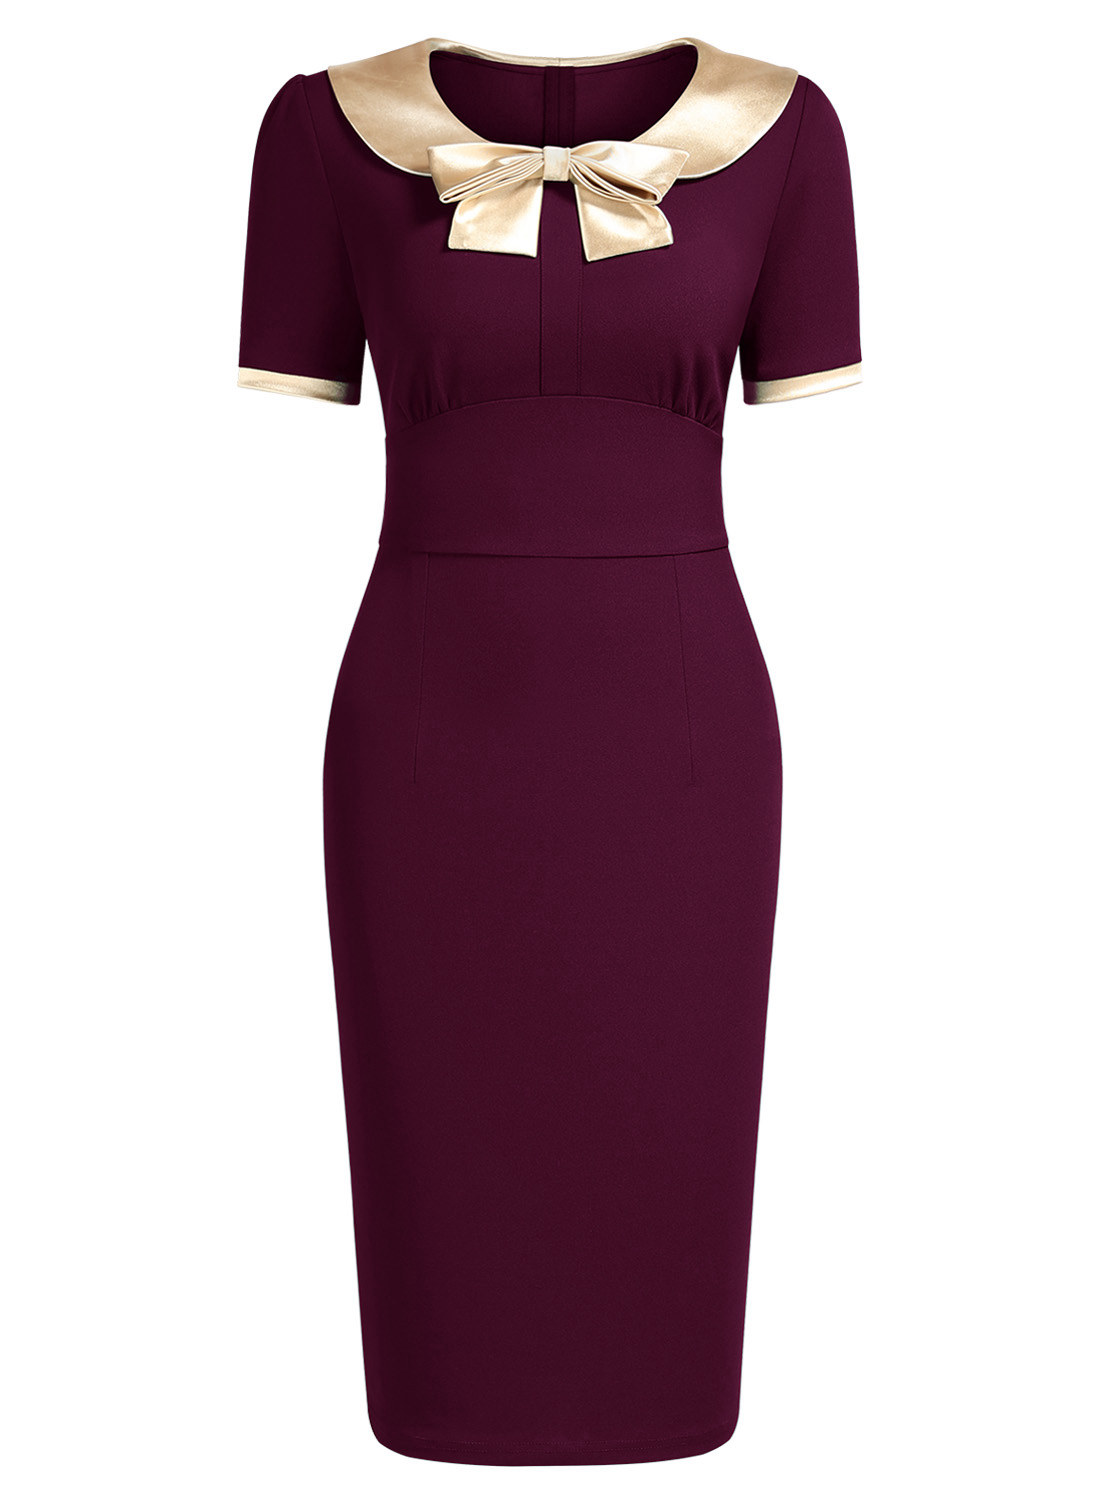 Golden Bow Contrast Color Wiggle Dress